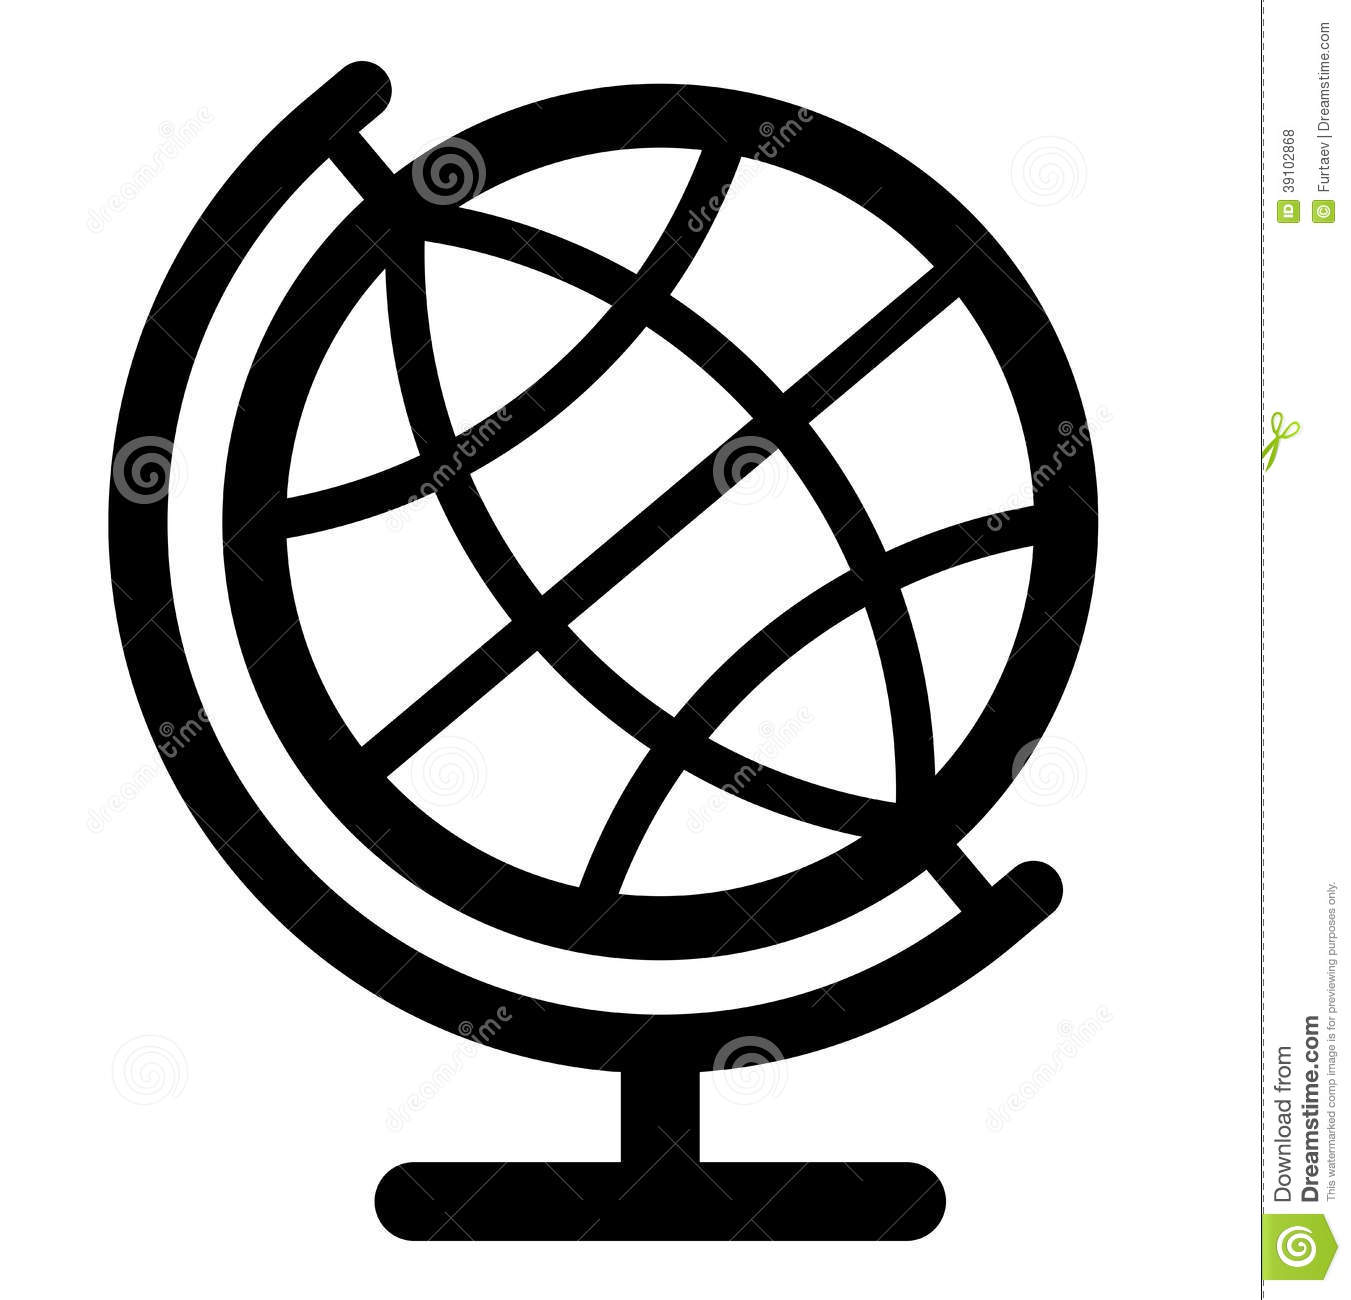 globe icon stock vector illustration of clipart icon 39102868 rh dreamstime com globe icon vector blue global icon vector